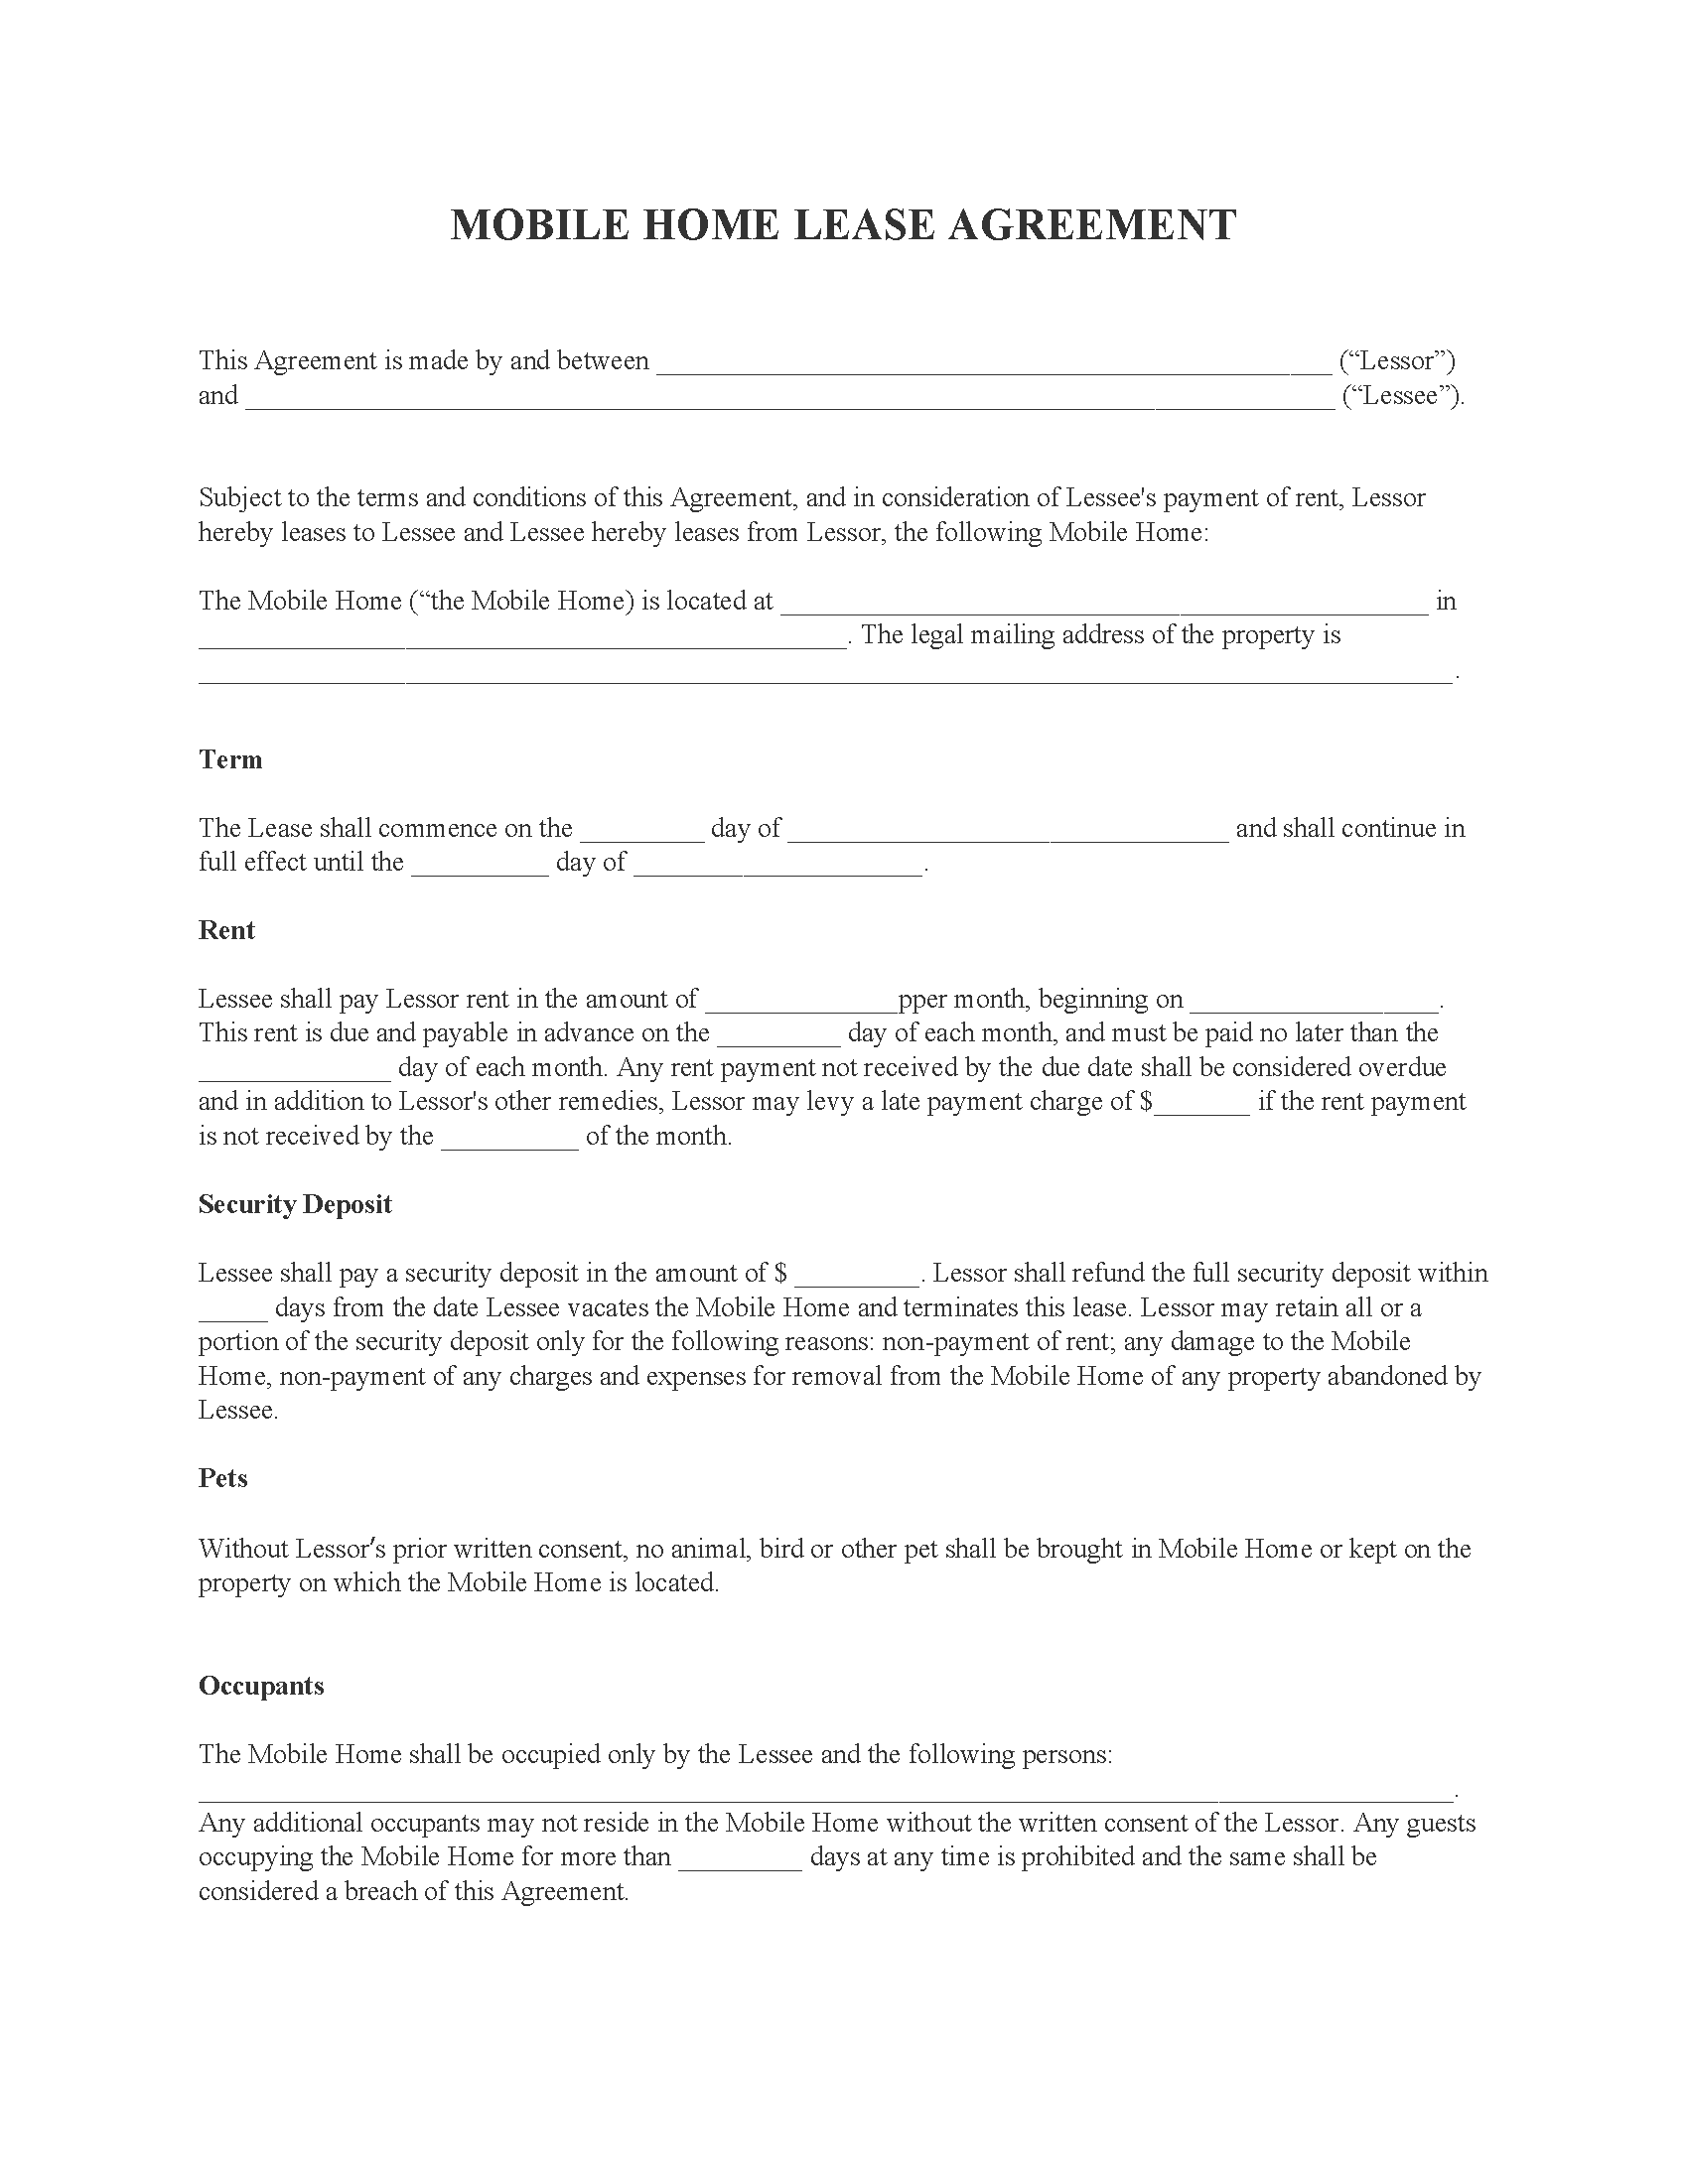 Mobile Home Lease Agreement